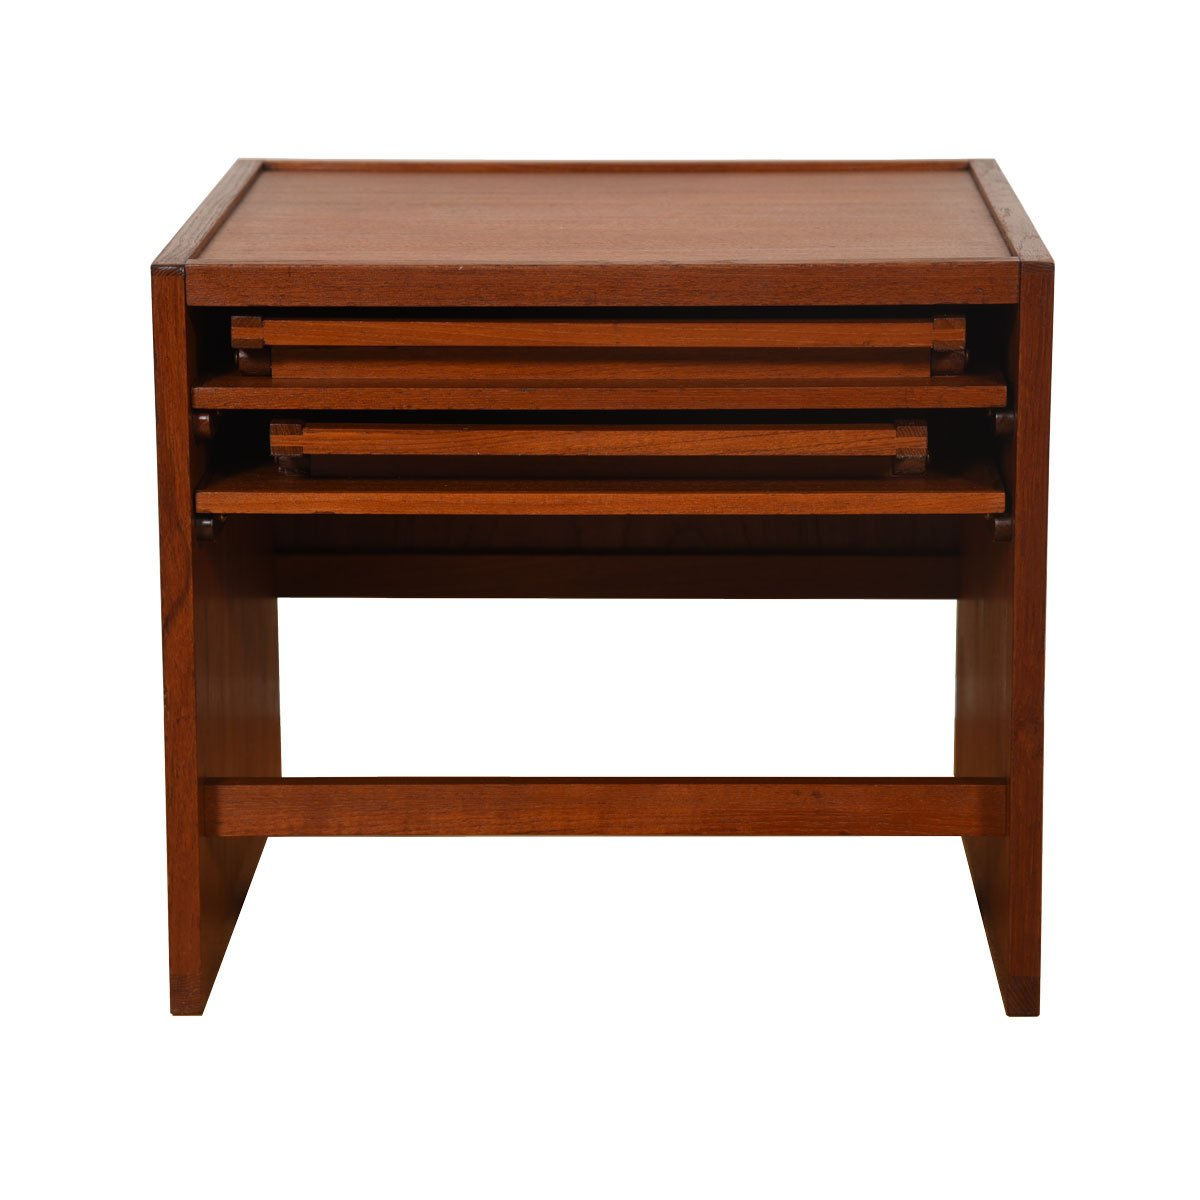 Danish Modern Teak Accent Square w/ 2 Folding Tray Tables